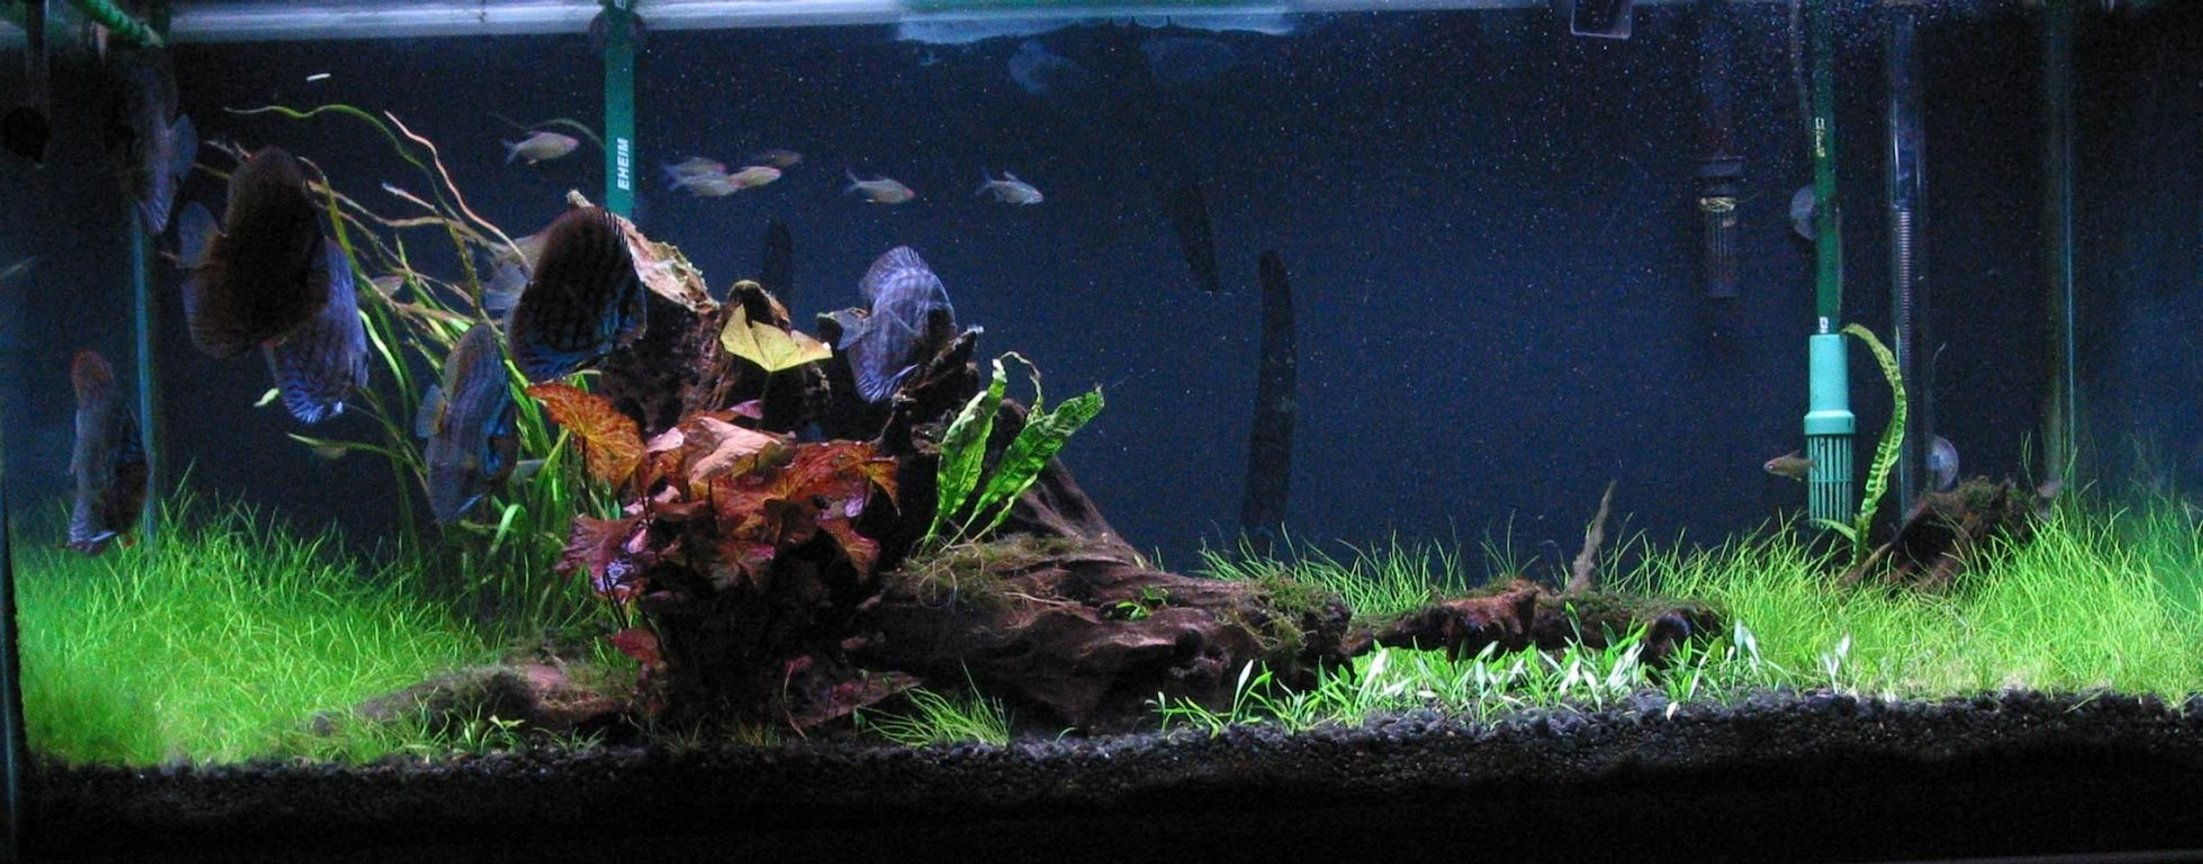 75 gallons planted tank (mostly live plants and fish) - Tank as of May 17, 2010. Still waiting for the java moss, crypt parva, balanse and crypt wendti to do their thing. Have had crypts before and they have always done well. This go round, I am experiencing rapid growth then rapid melt down.